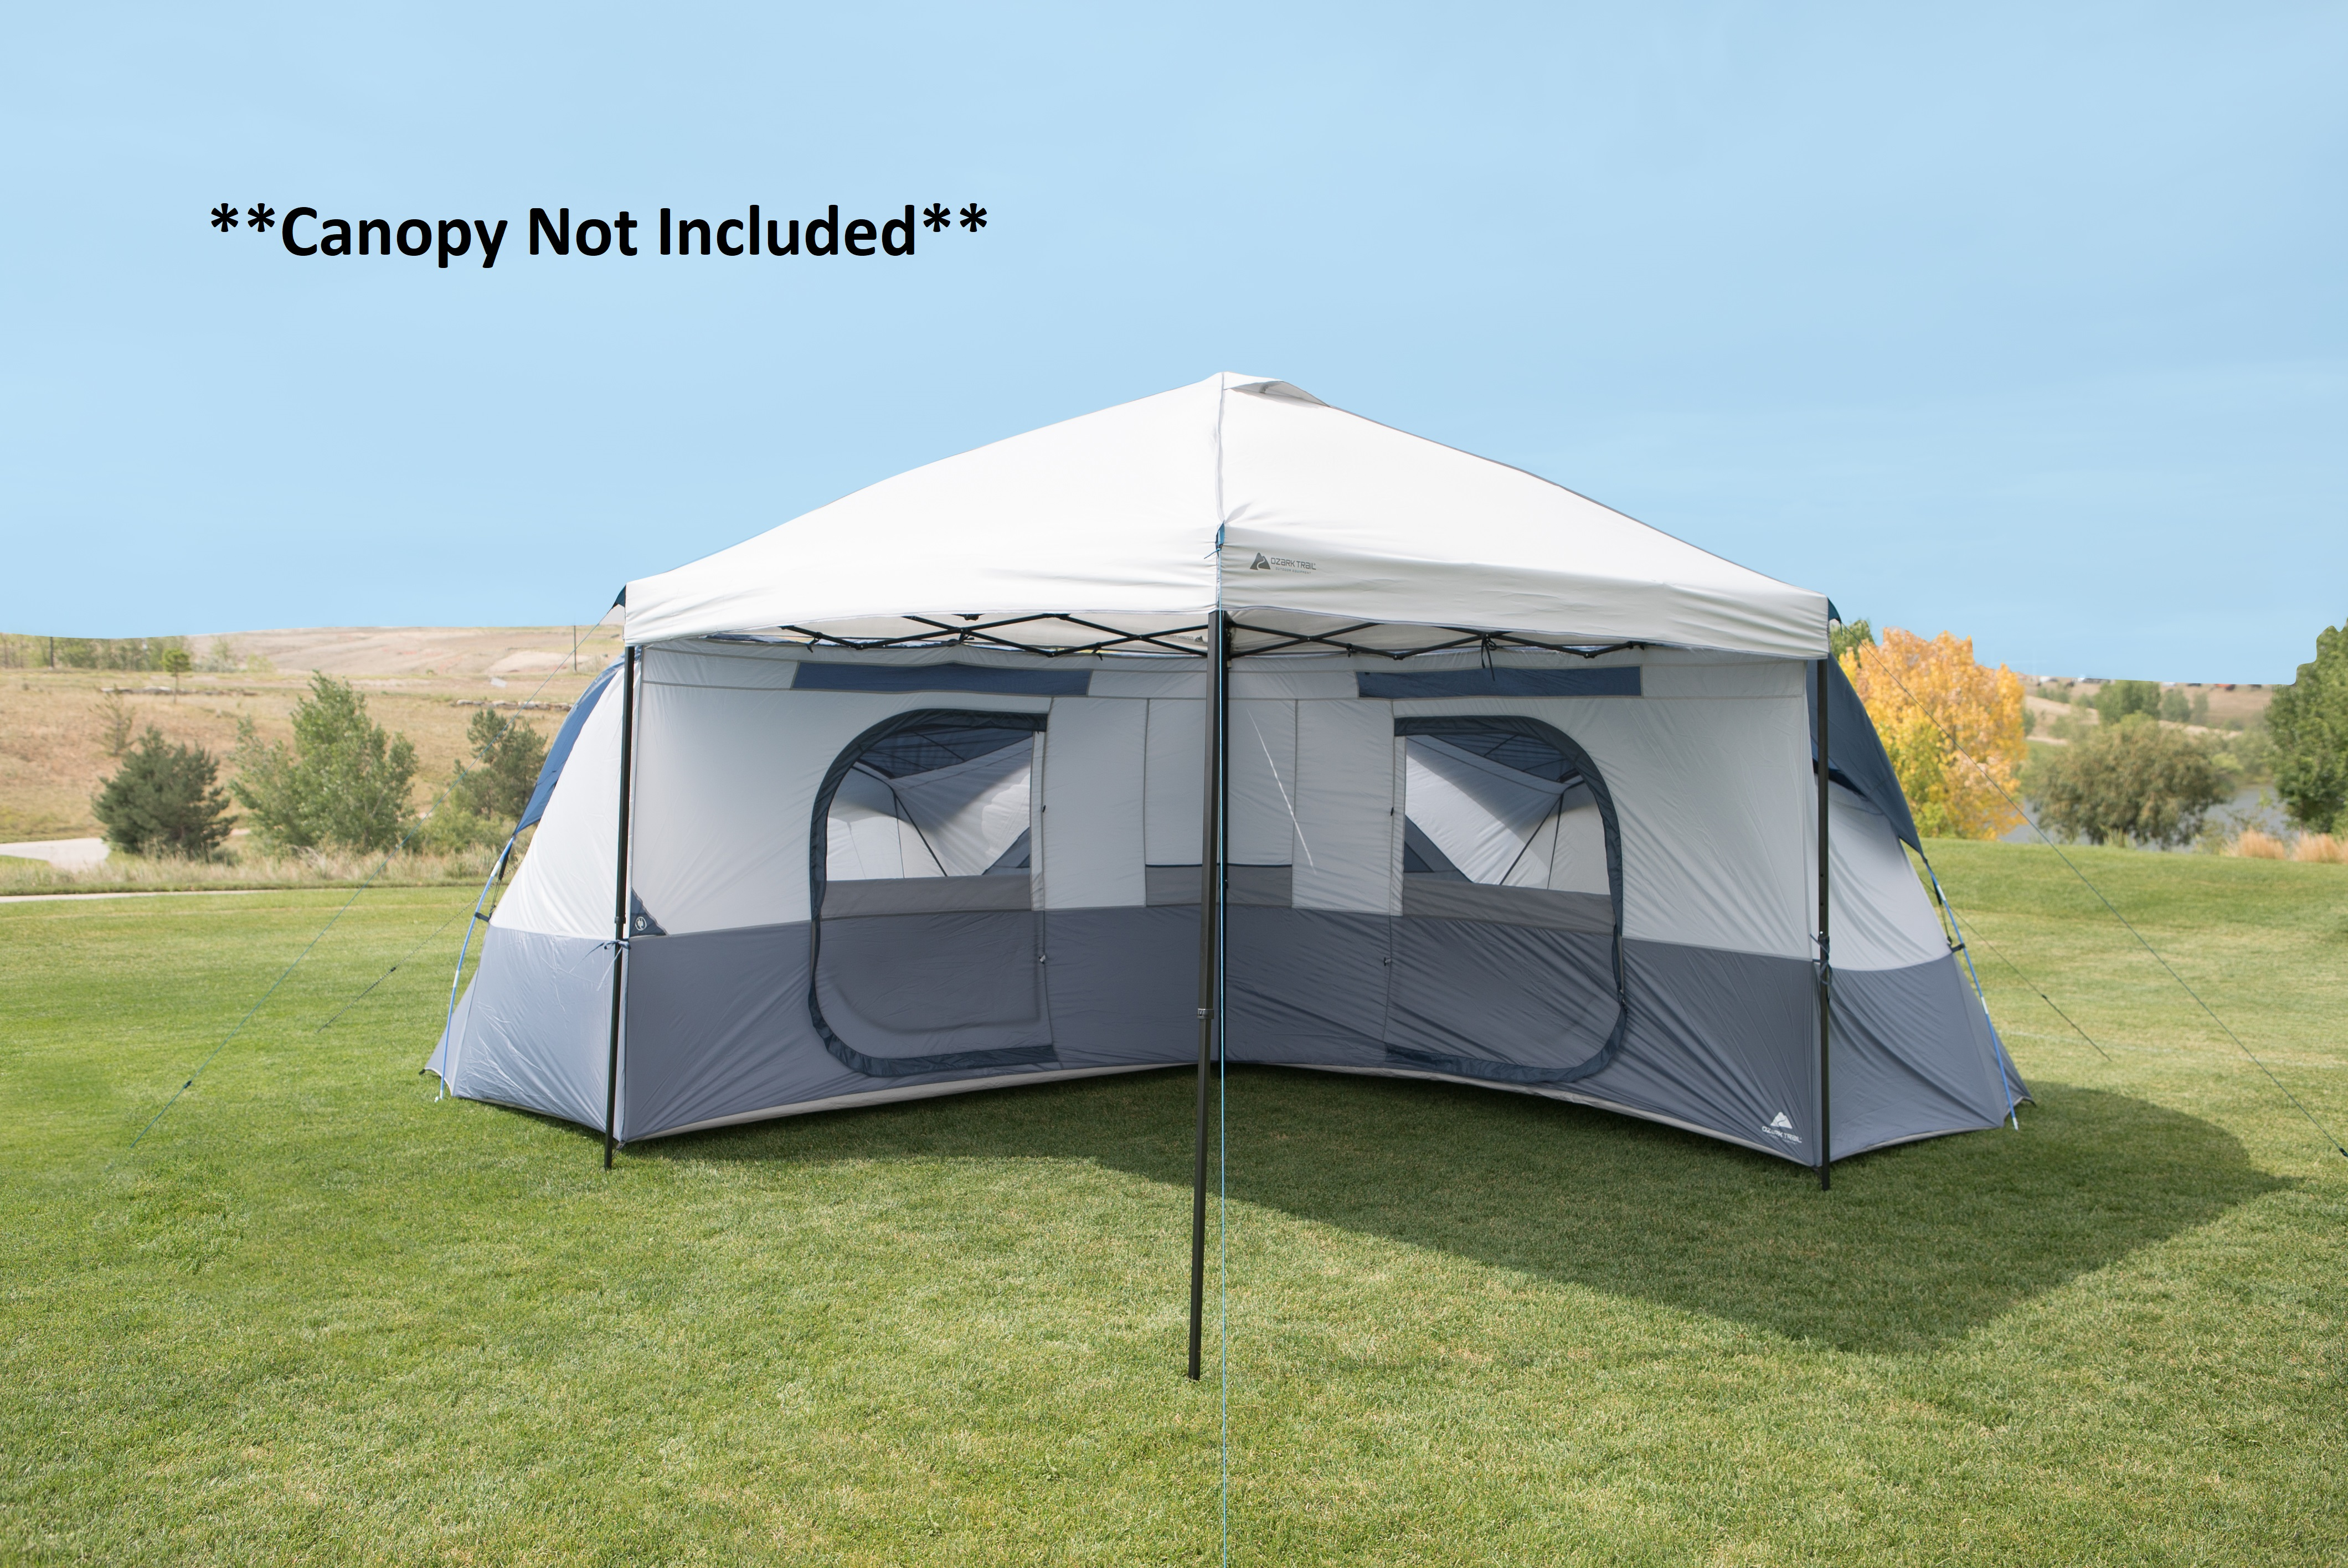 Camping Tents Ozark Trail 6 Person 10 x 10 Instant Cabin ...